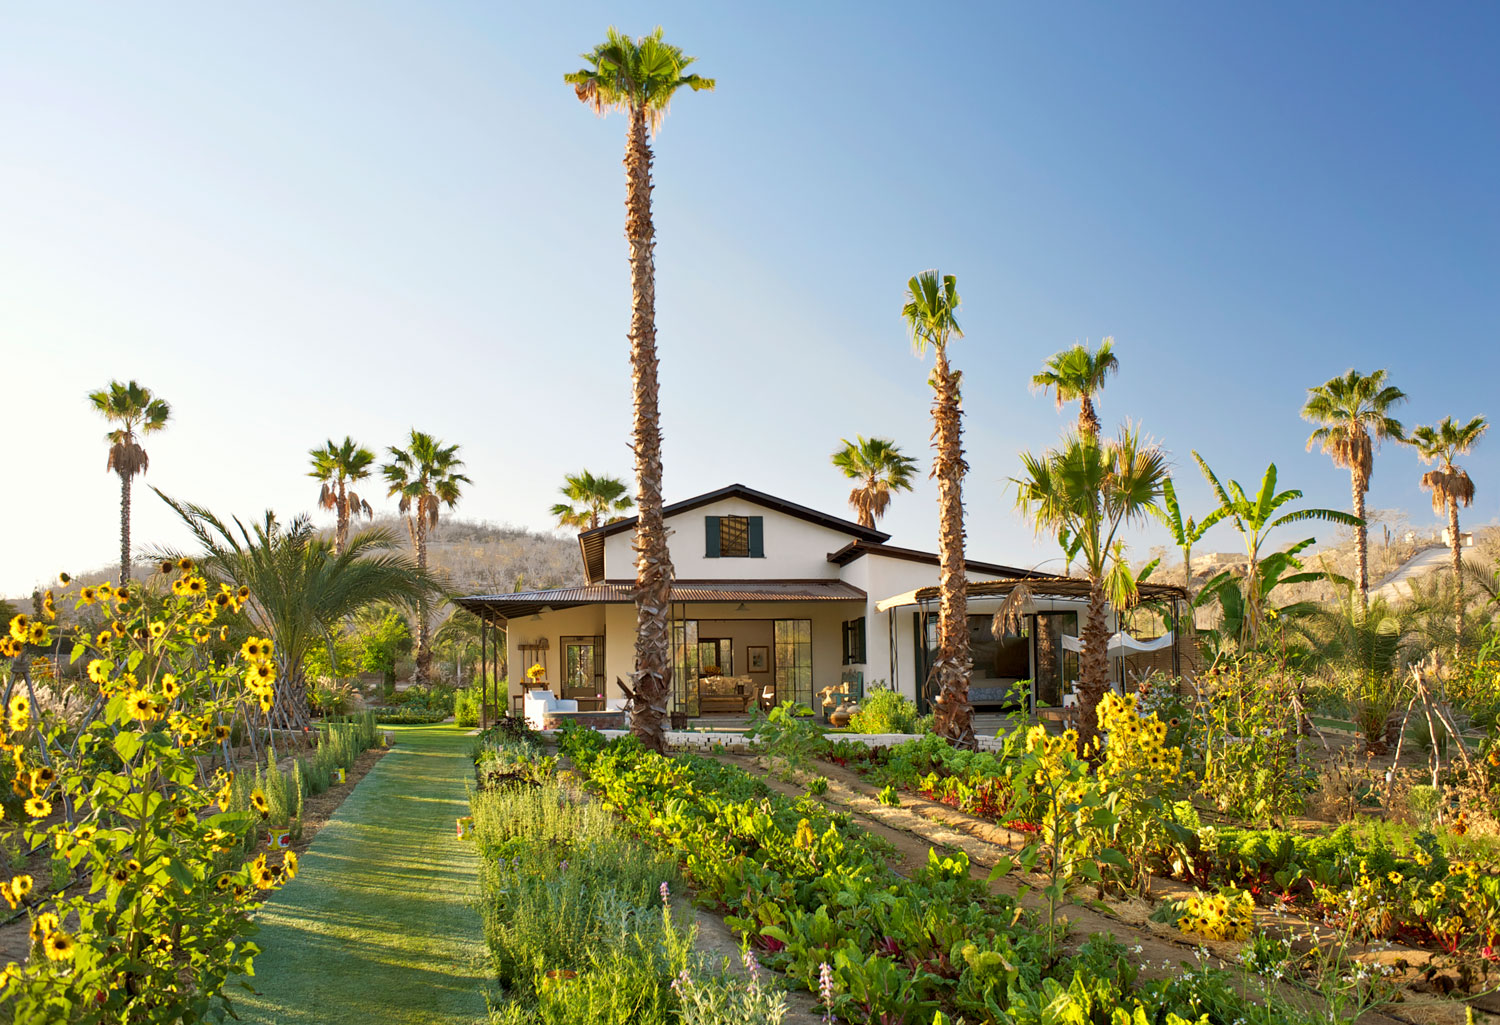 Culinary-Cottages-Flora-Farms-web.jpg